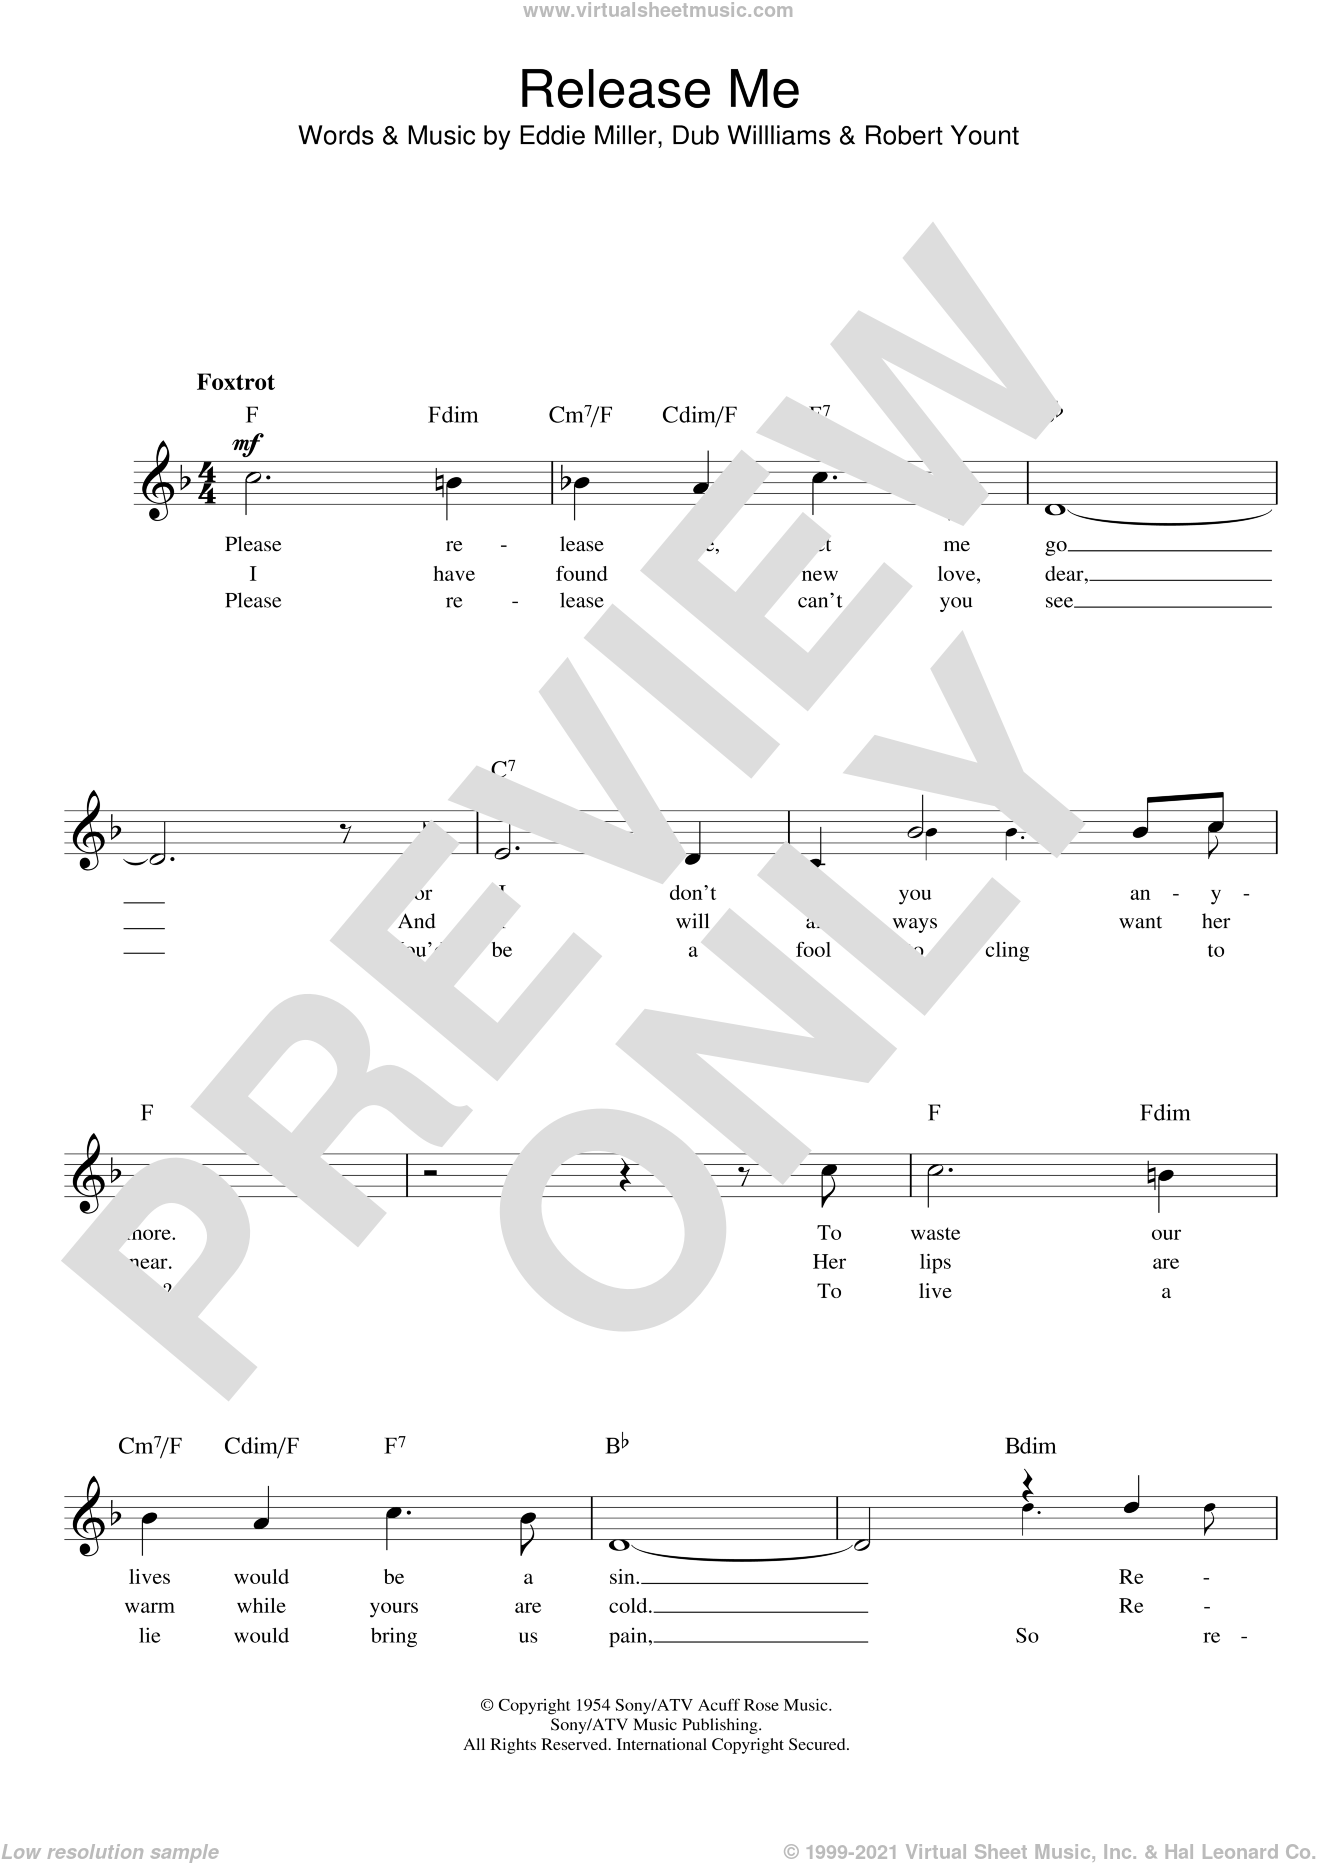 Release Me sheet music for voice and other instruments (fake book) by Engelbert Humperdinck, Esther Phillips, Johnny Adams, Tom Jones, Guster and Robbie Williams, intermediate skill level